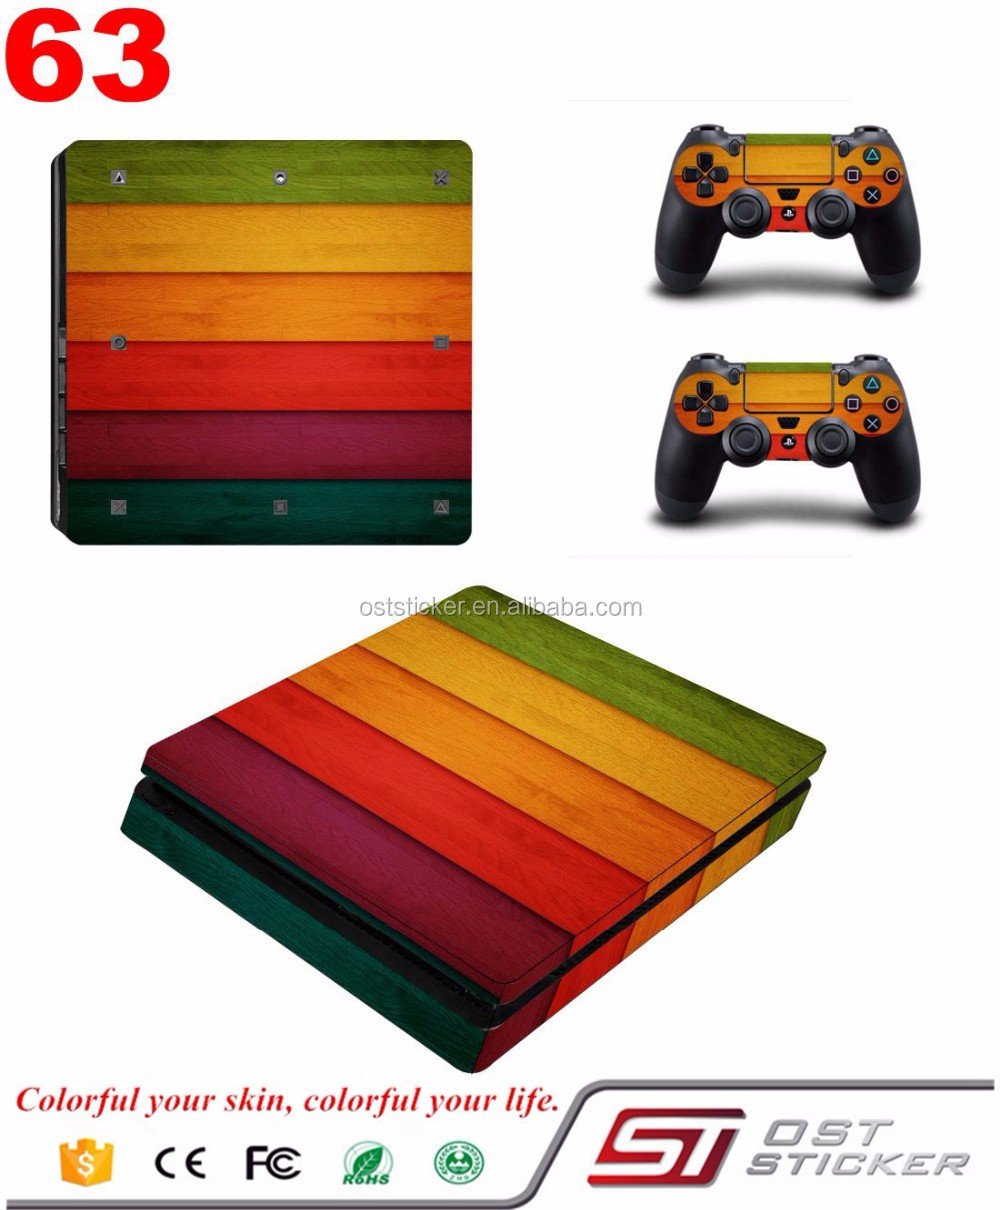 Vinyl material console skin for ps4 slim Protective Skin Sticker